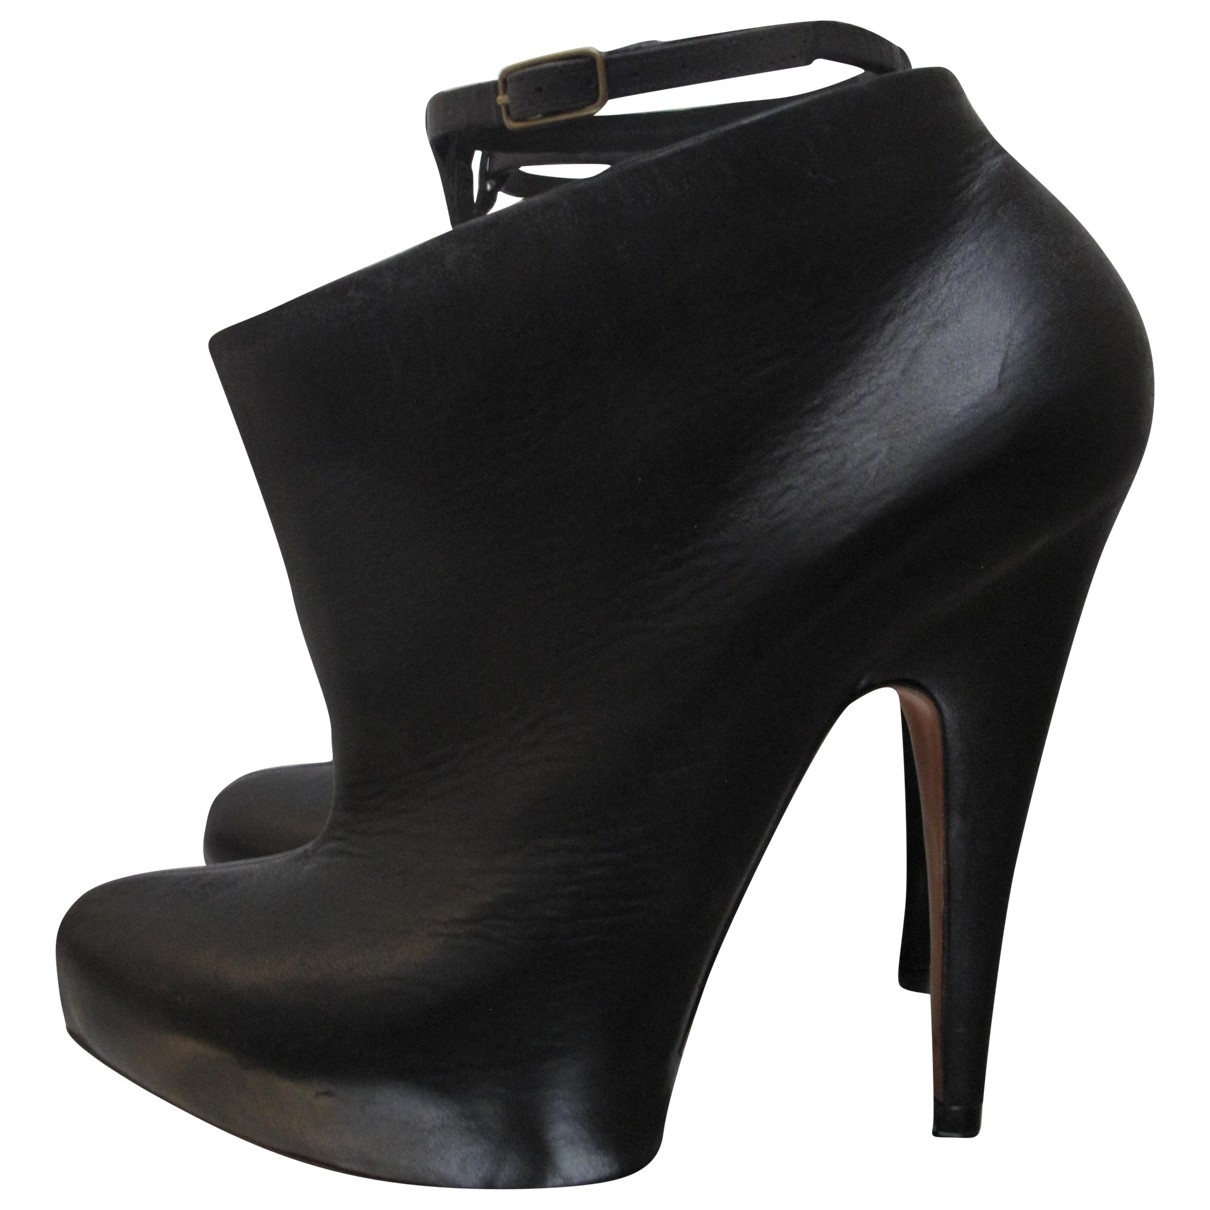 Givenchy \N Black Leather Ankle boots for Women 38.5 EU